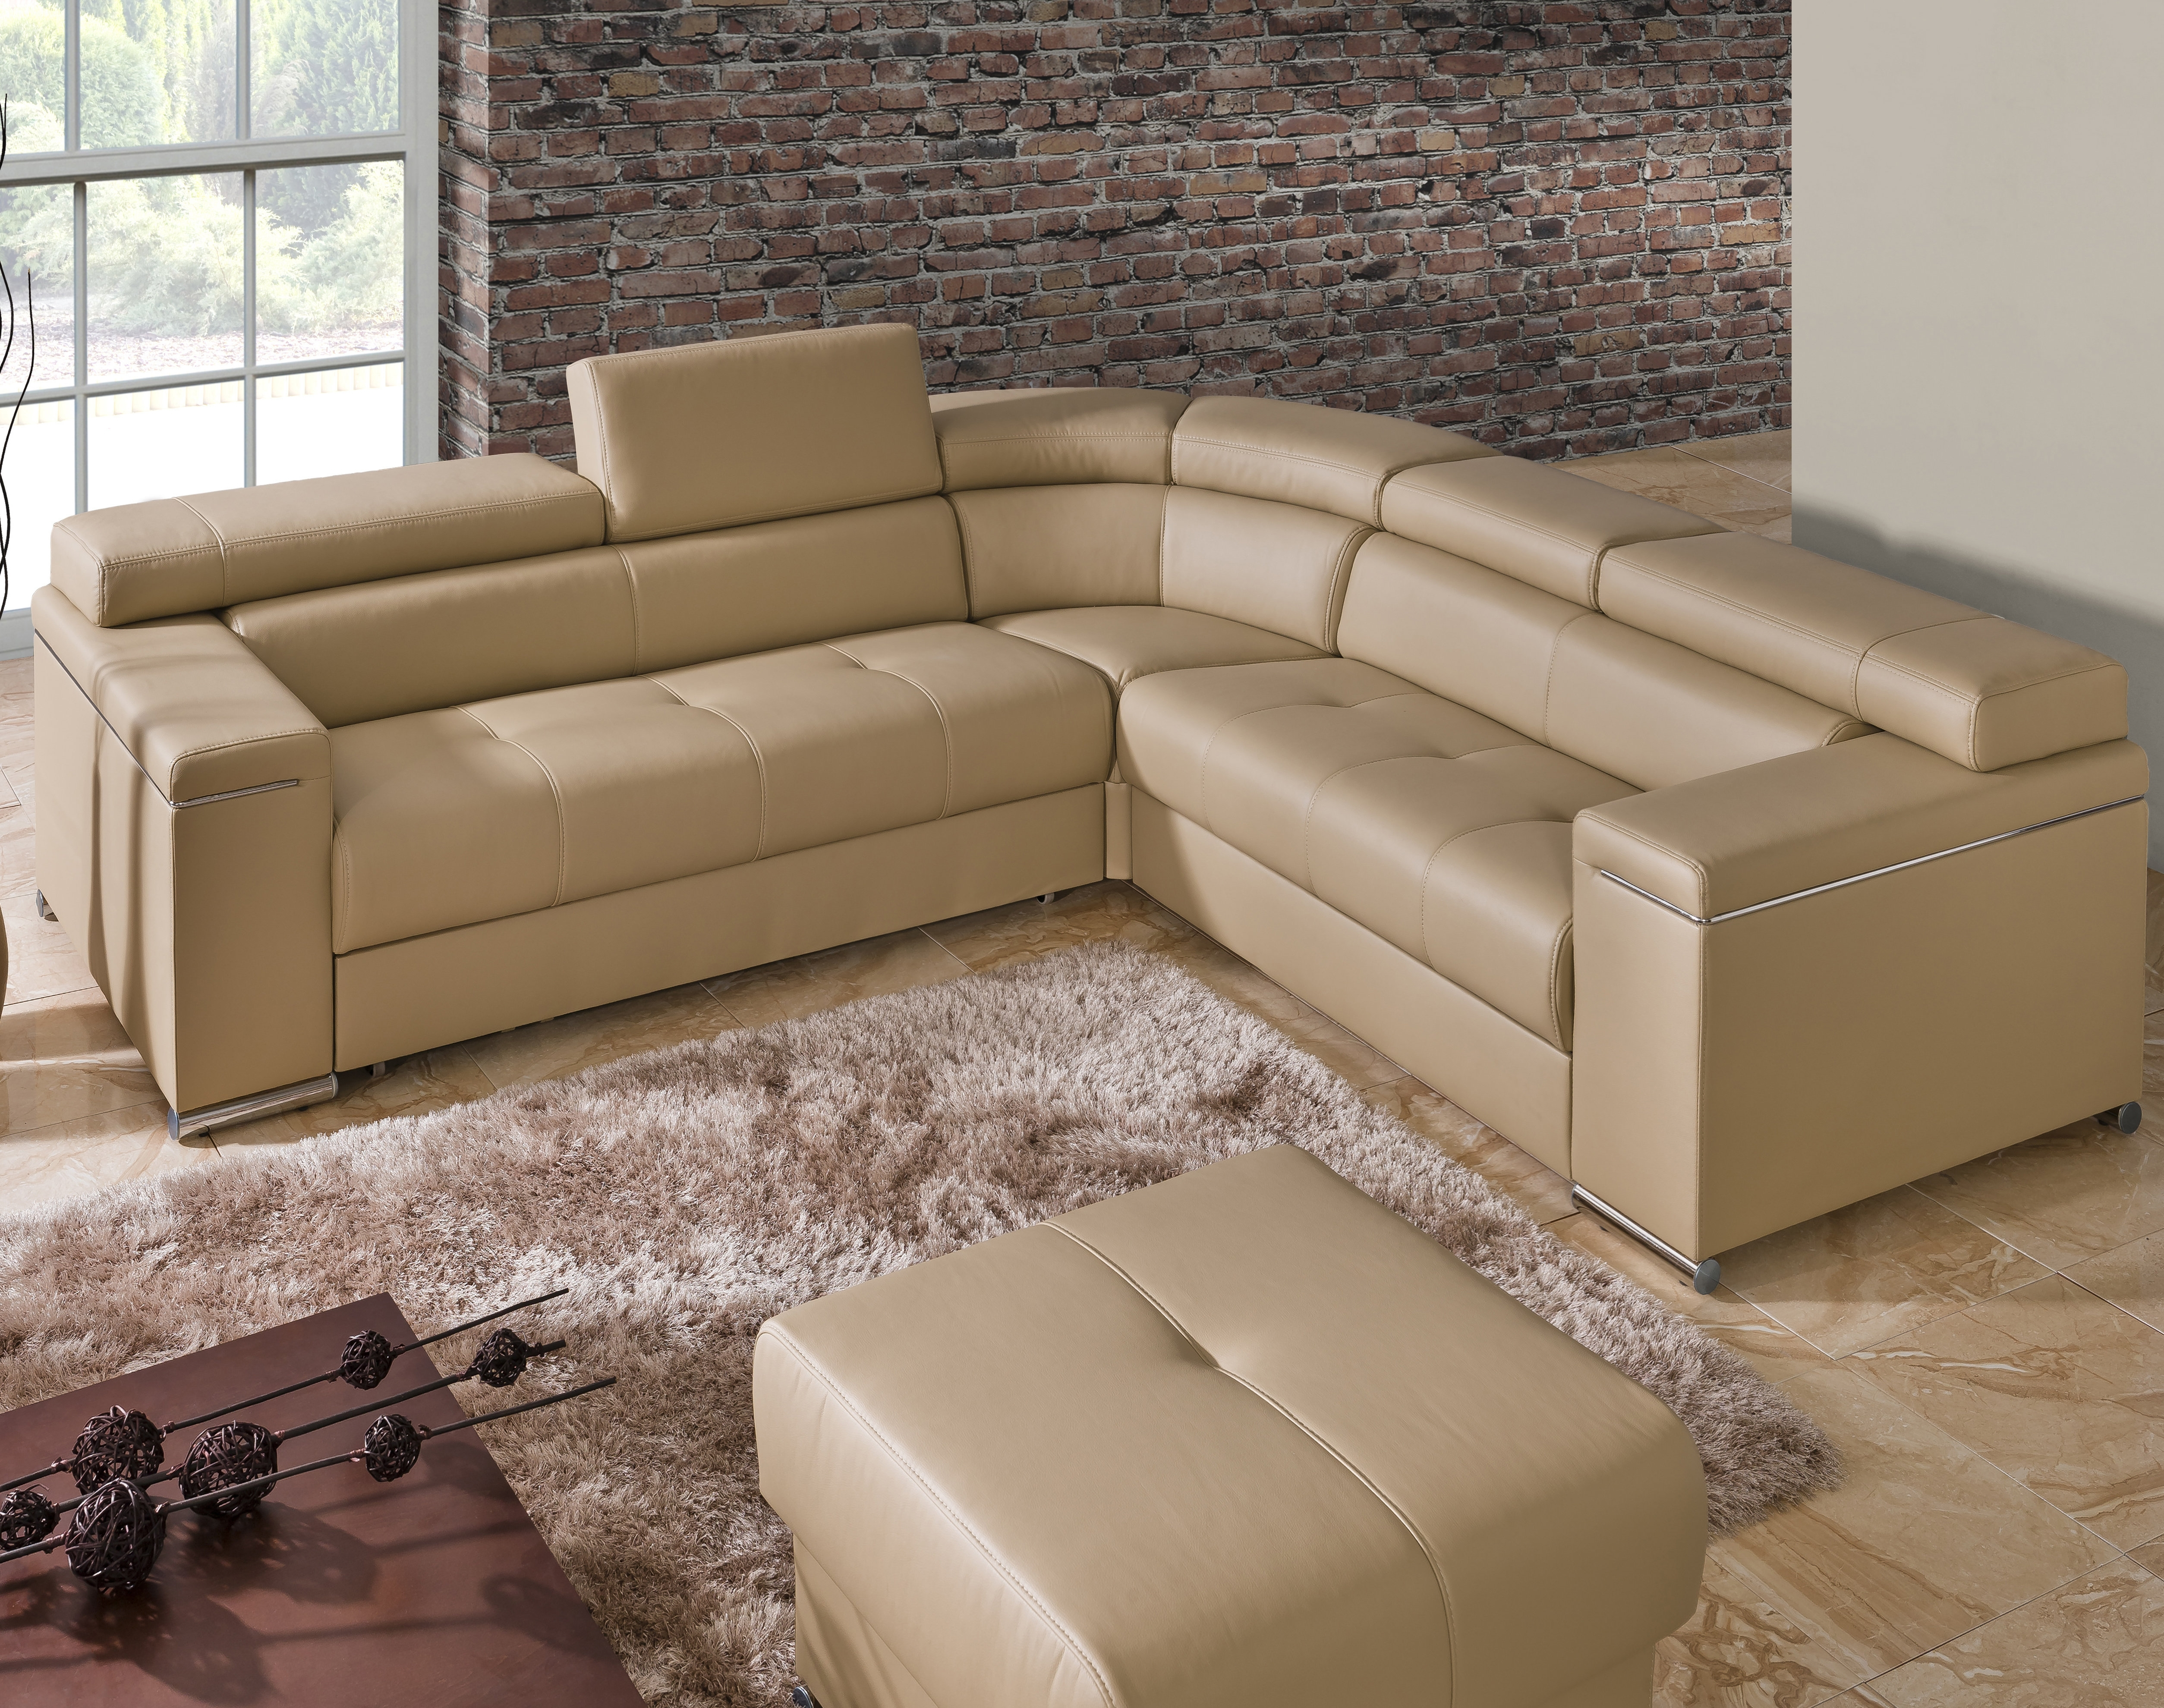 The Collection German Furniture Sleeper Sectional | Wayfair Within Blaine 4 Piece Sectionals (Image 24 of 25)